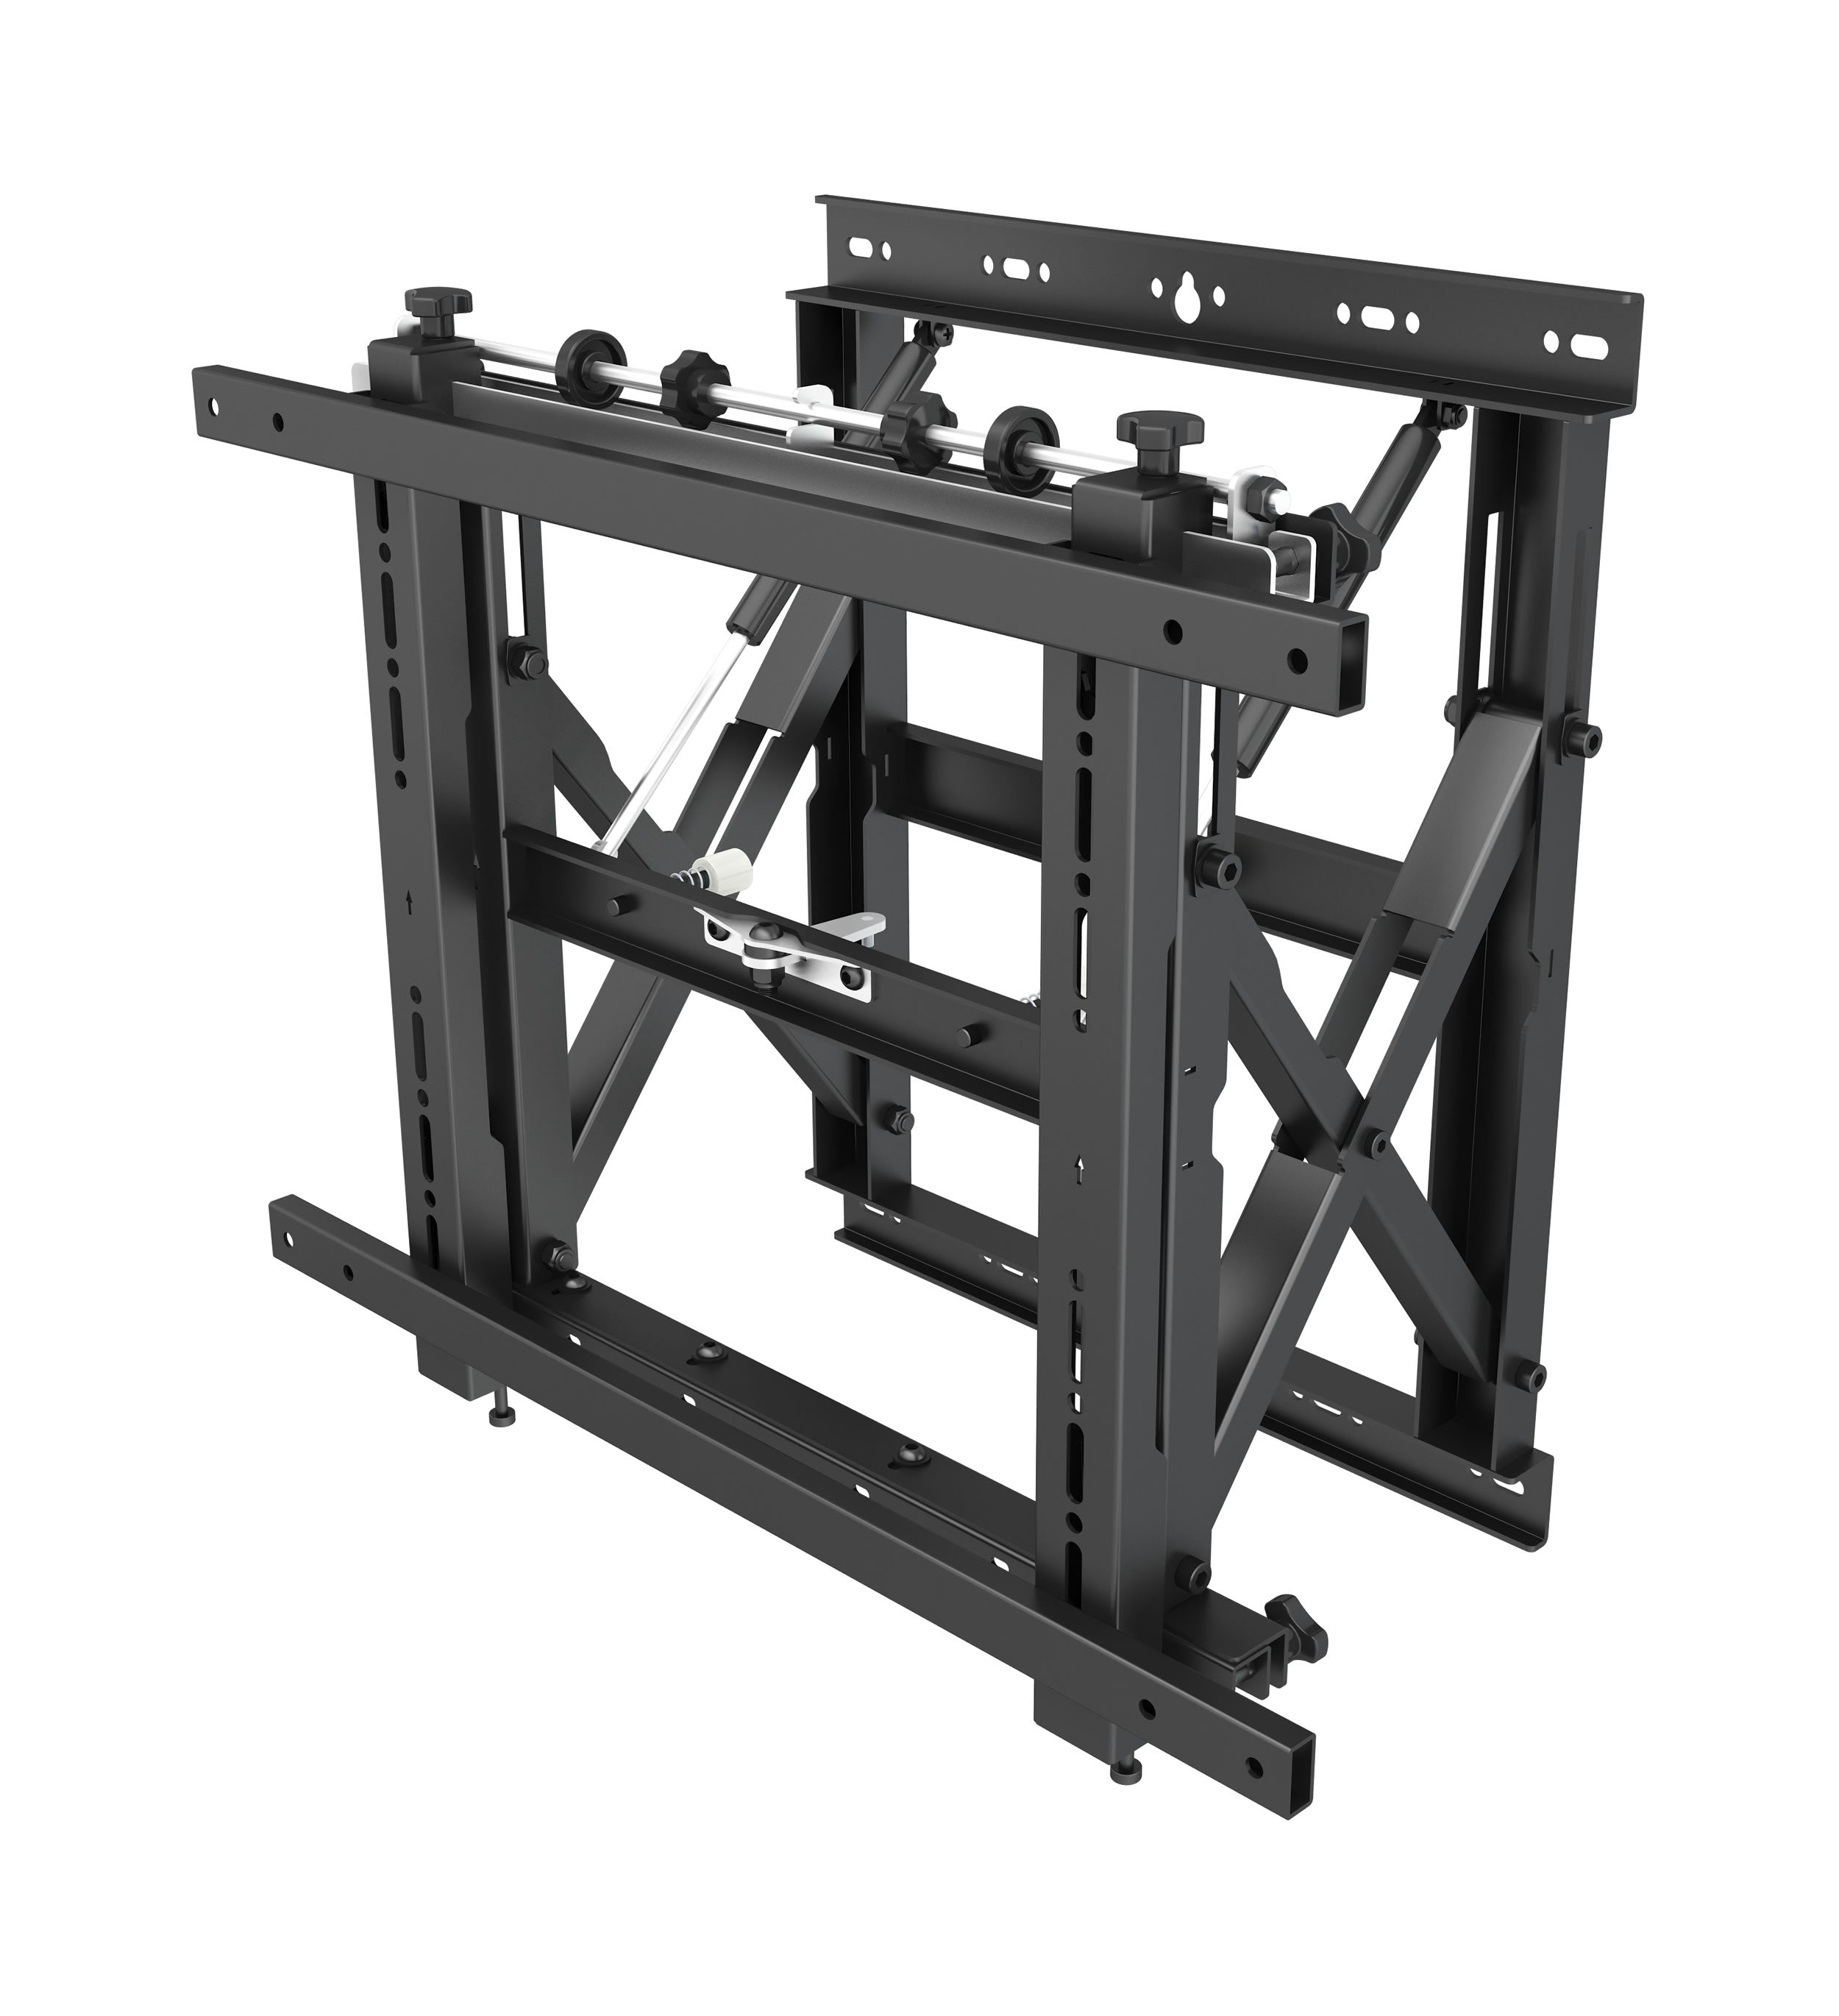 64-1160 Commercial Video Wall Bracket for 42-70 inches Screens